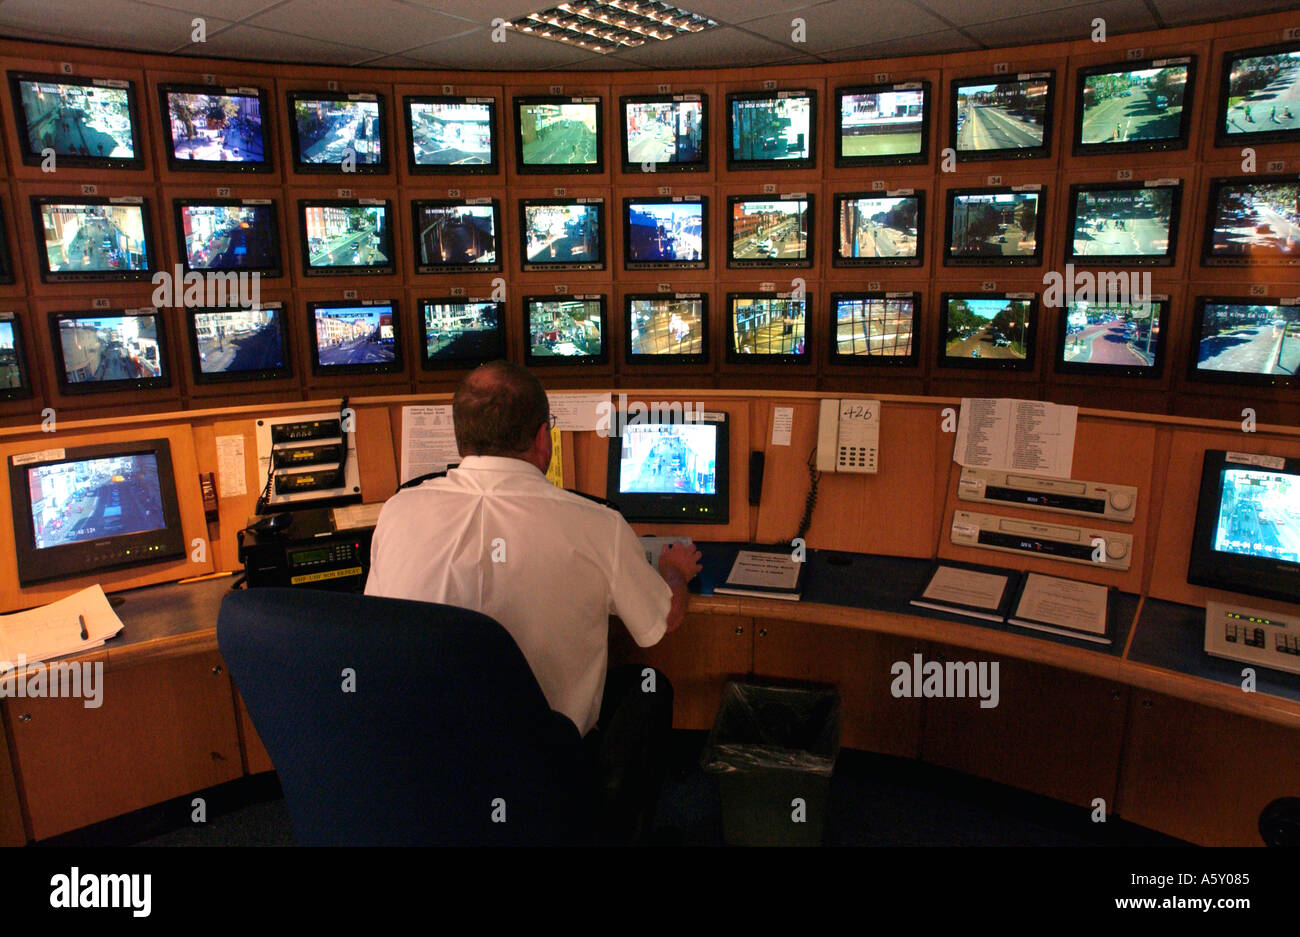 Peachy Cctv Control Room Tv Screens Britain Uk Stock Photo Royalty Largest Home Design Picture Inspirations Pitcheantrous